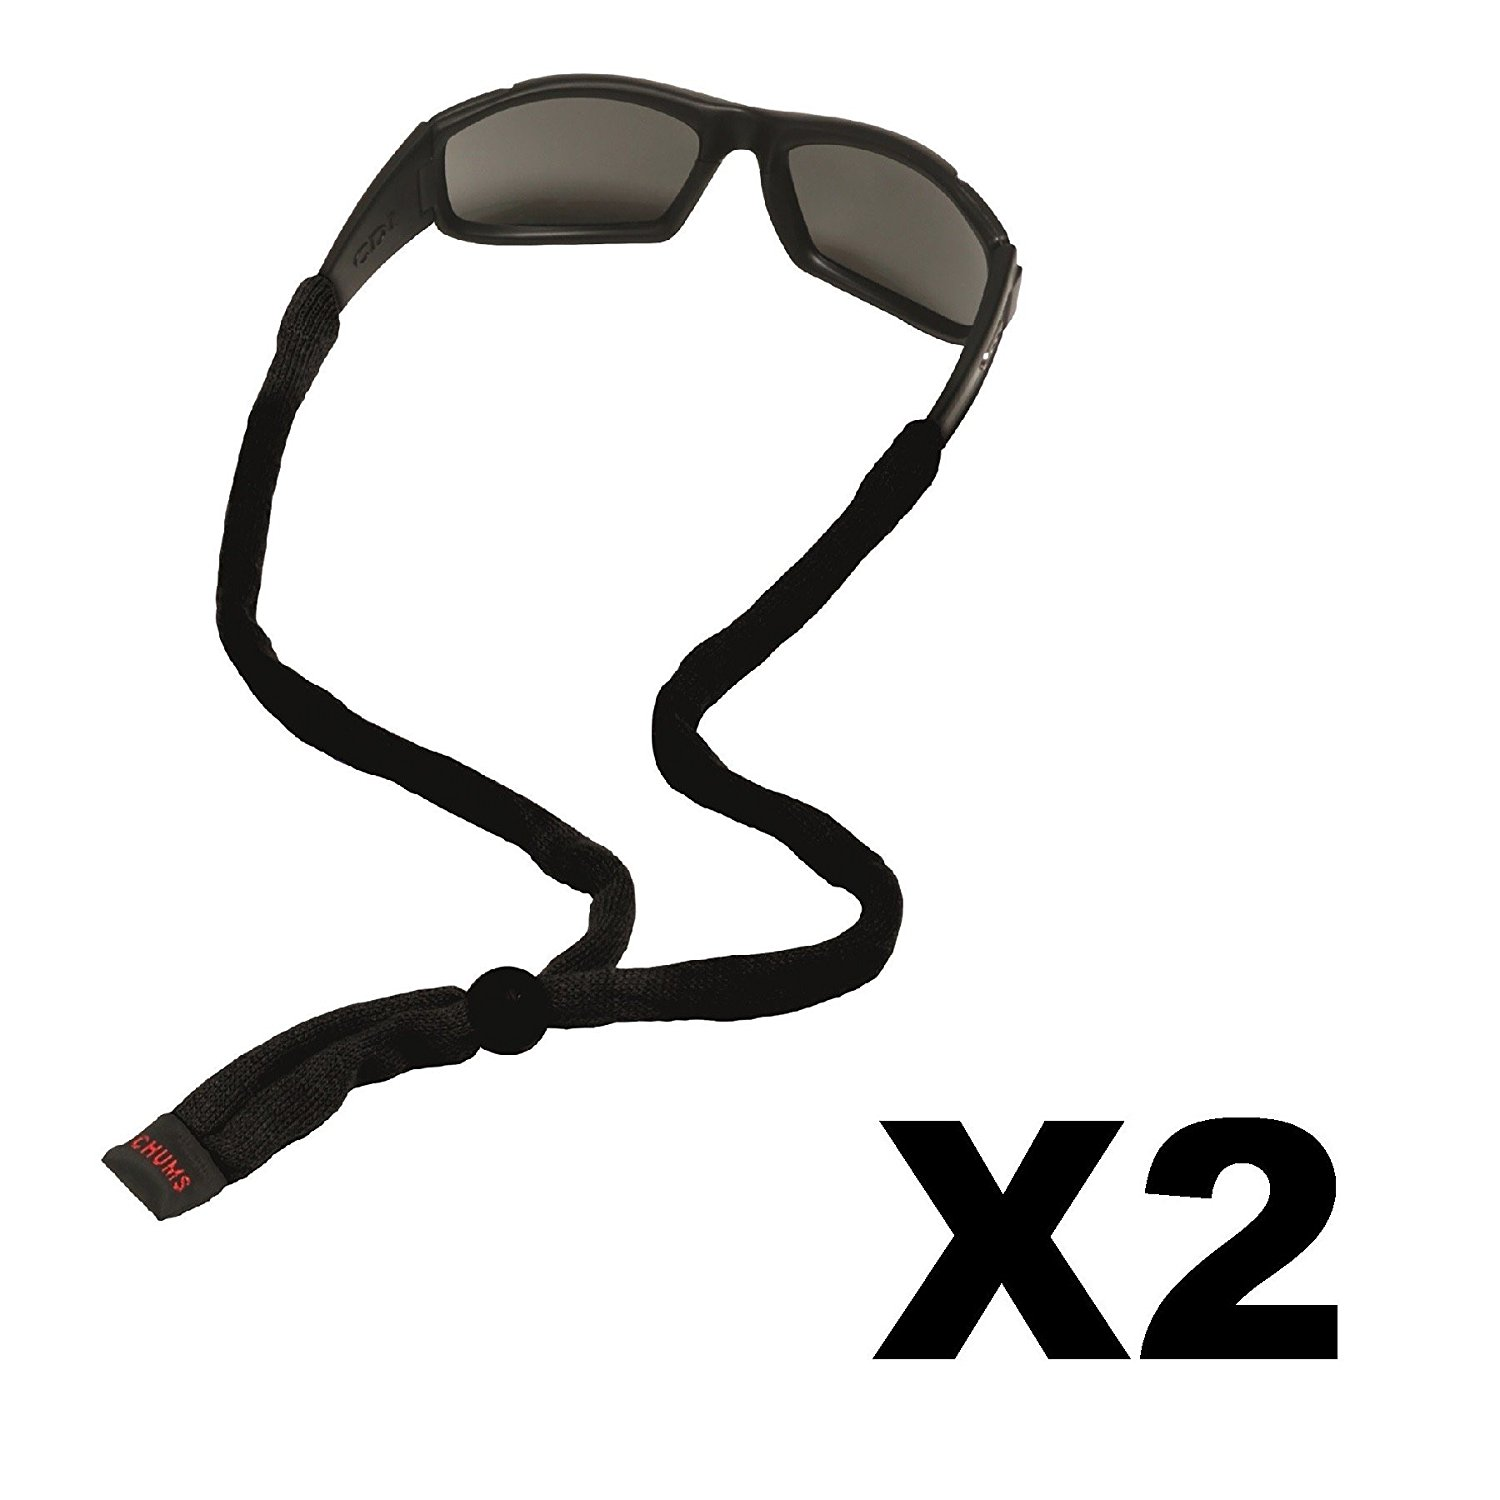 Chums Cotton Eyeglass and Sunglass Retainer 2 Pack Strap Black